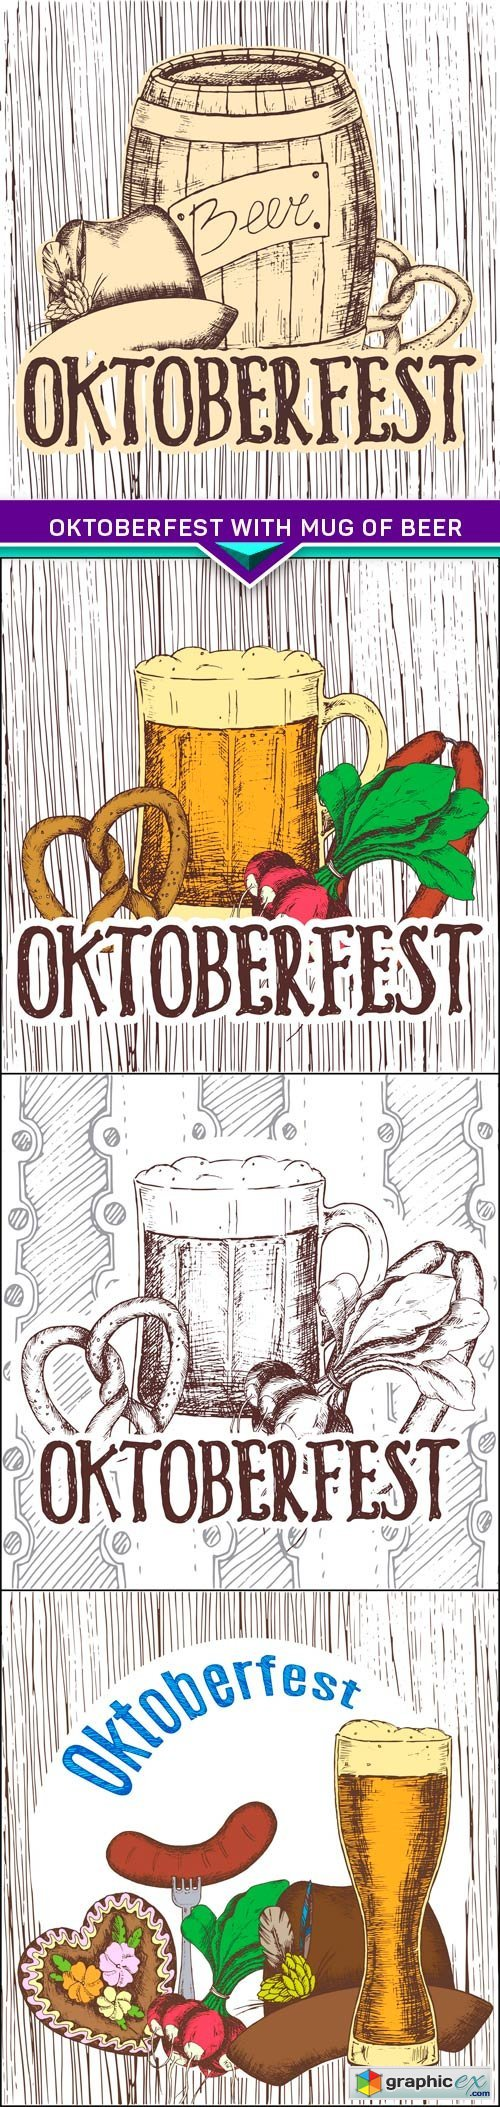 Oktoberfest with mug of beer 4X EPS